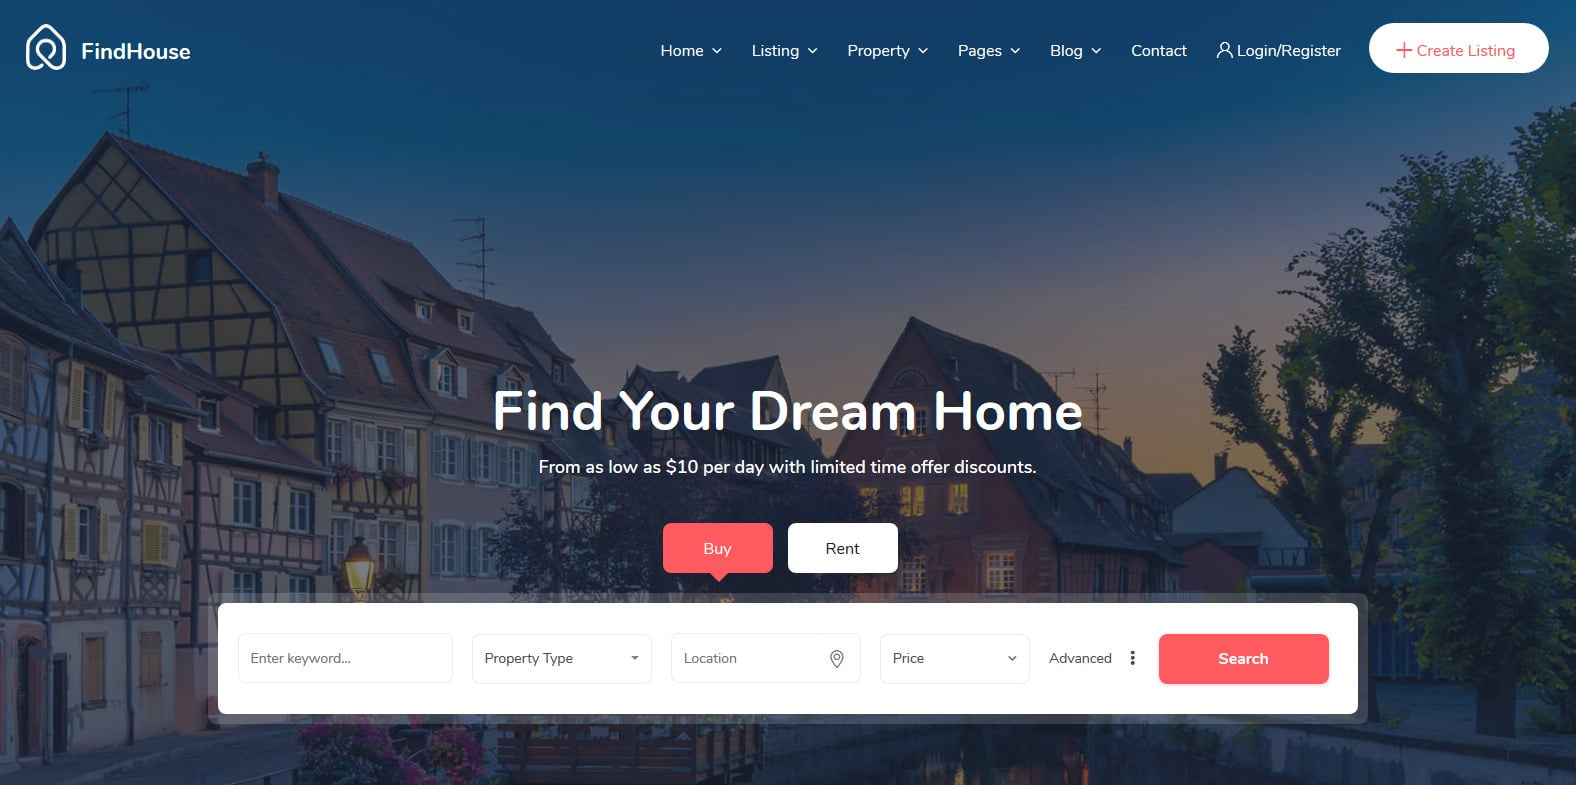 findhouse-real-estate-website-template